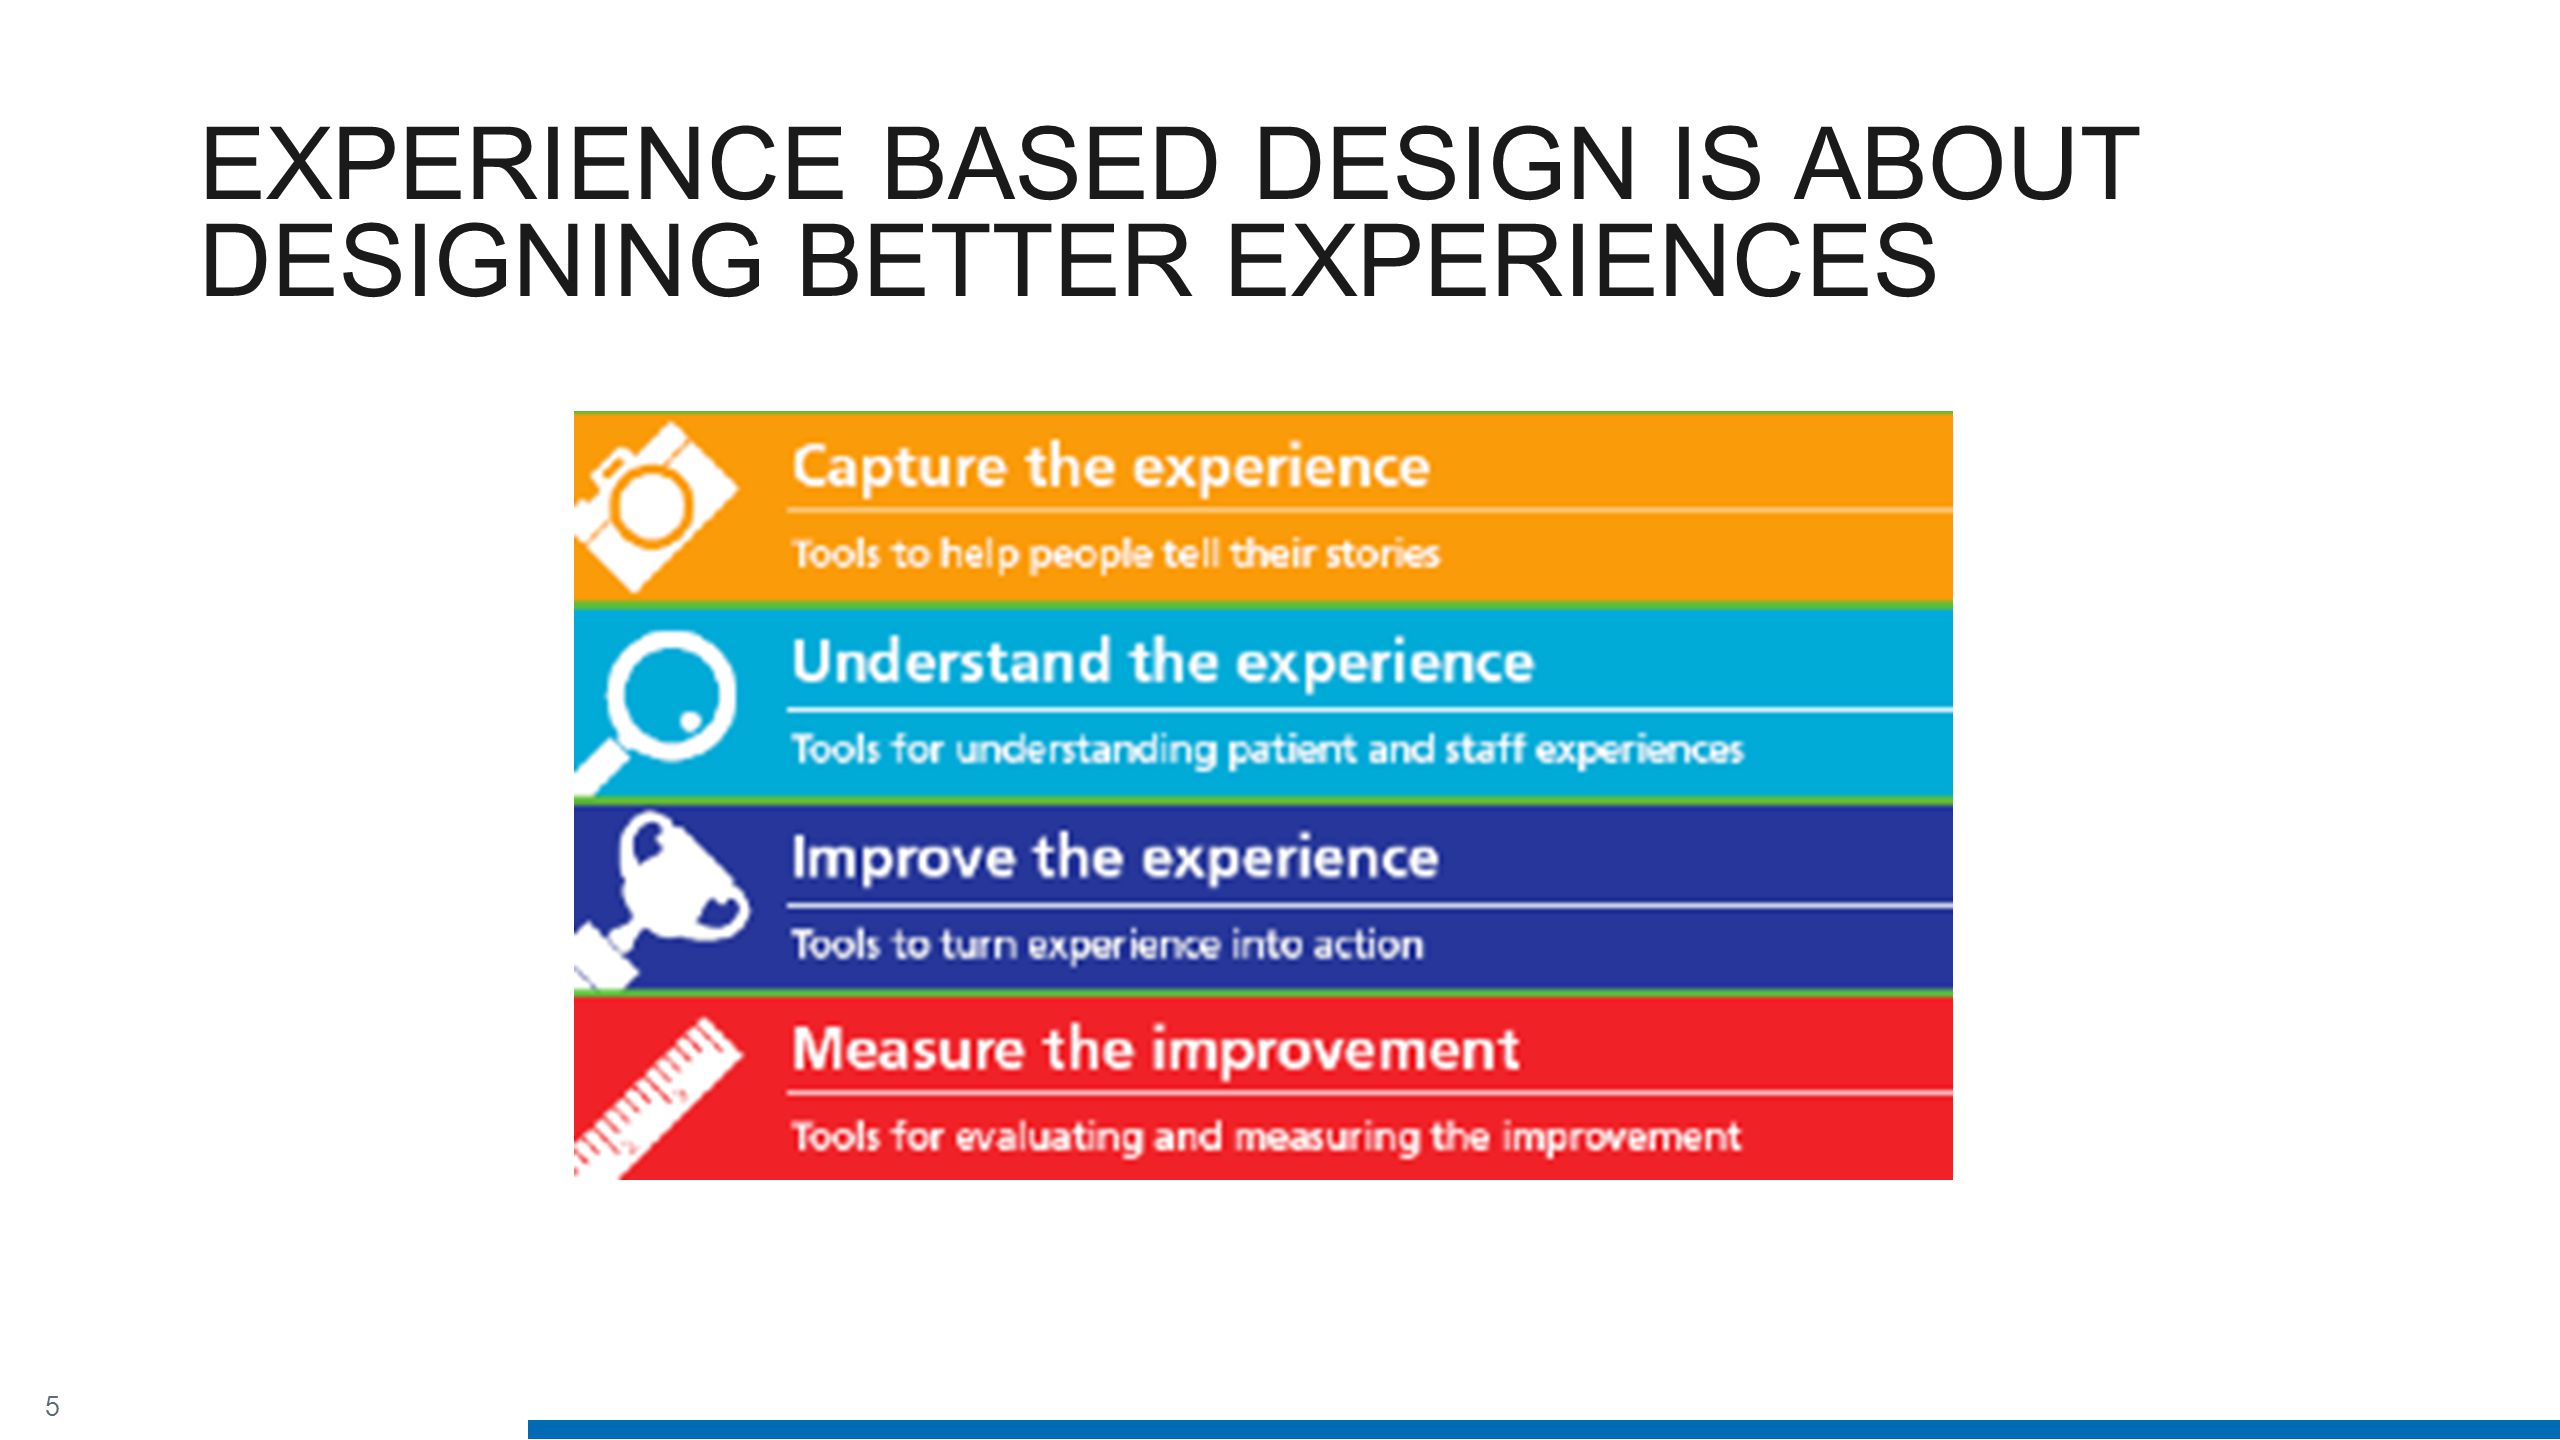 5 EXPERIENCE BASED DESIGN IS ABOUT DESIGNING BETTER EXPERIENCES